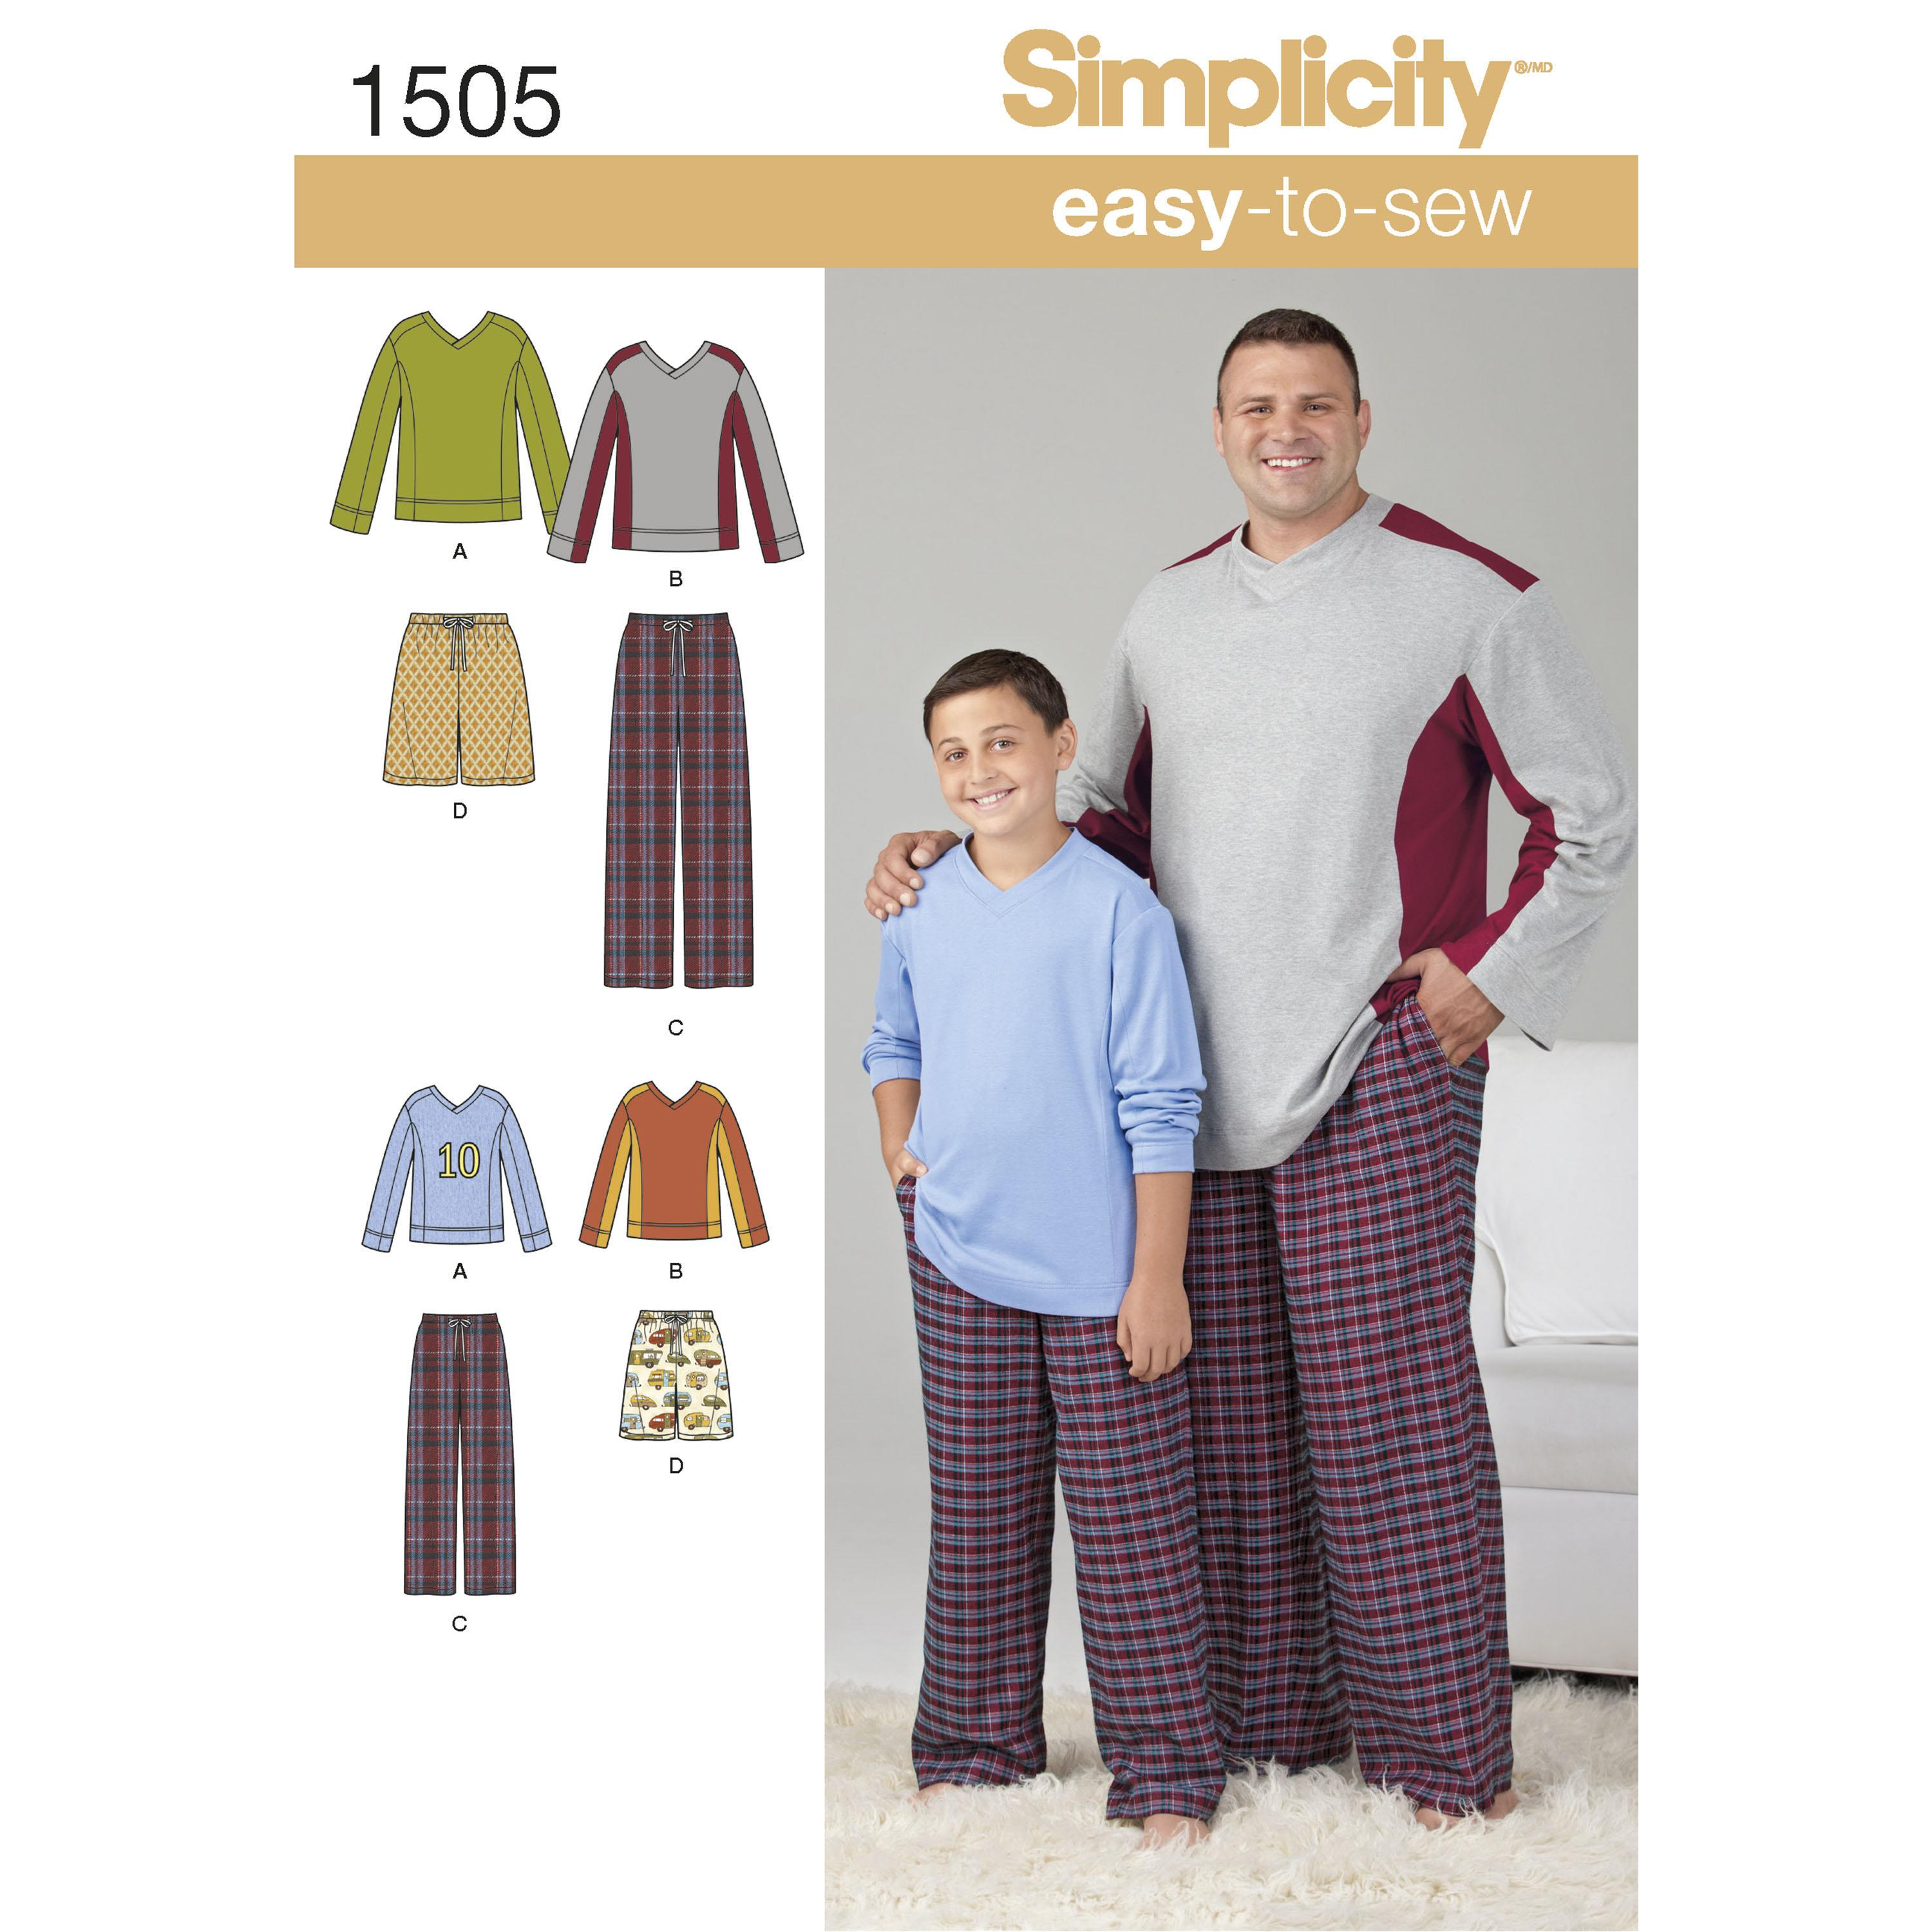 Simplicity S1505 Husky Boys' & Big & Tall Men's Tops and Trousers